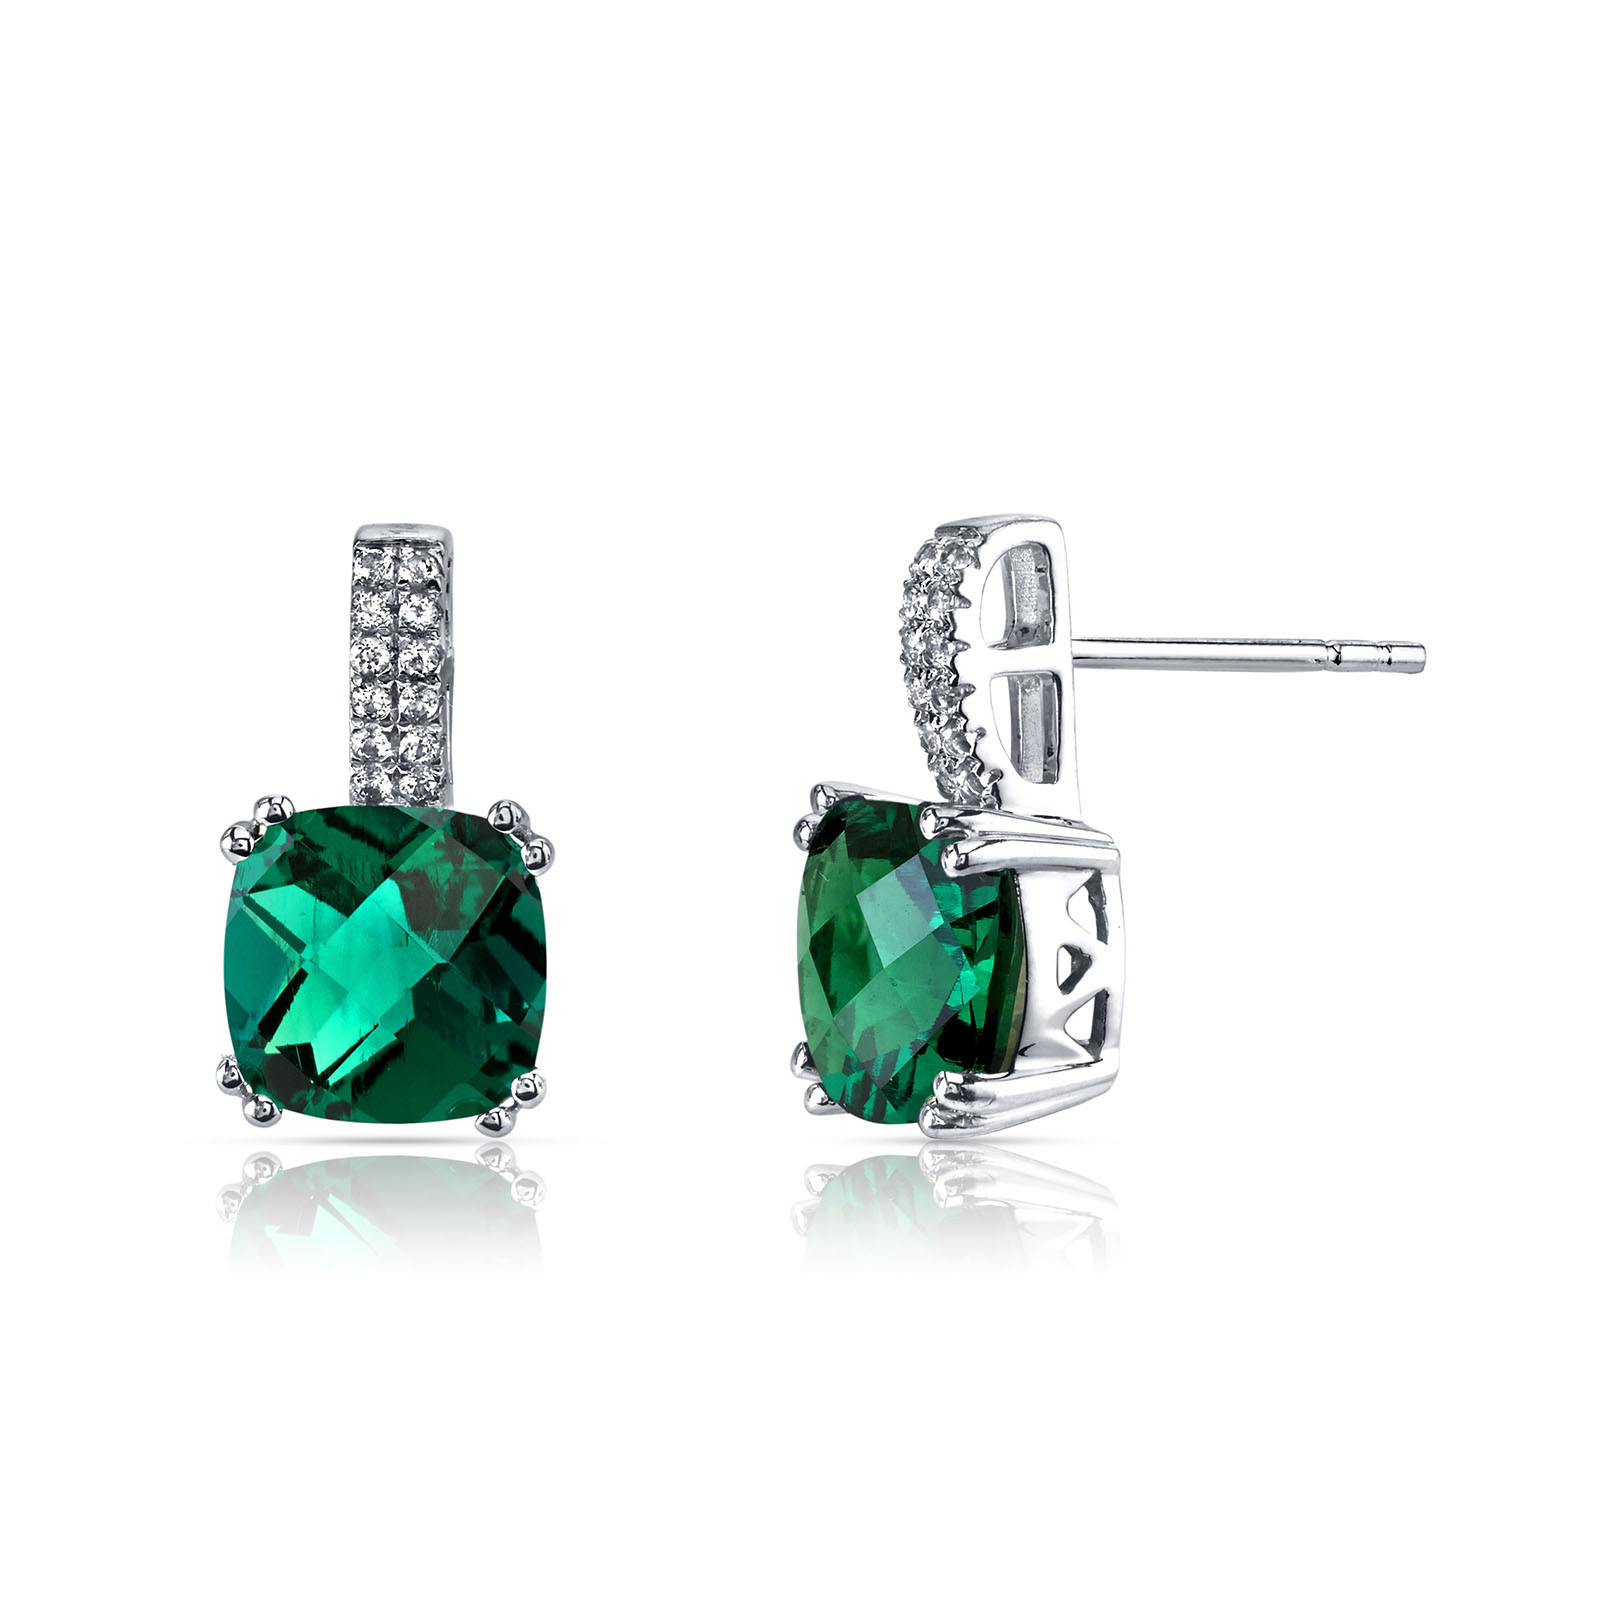 Cushion Cut Emerald White Topaz Earrings In 9ct White Gold